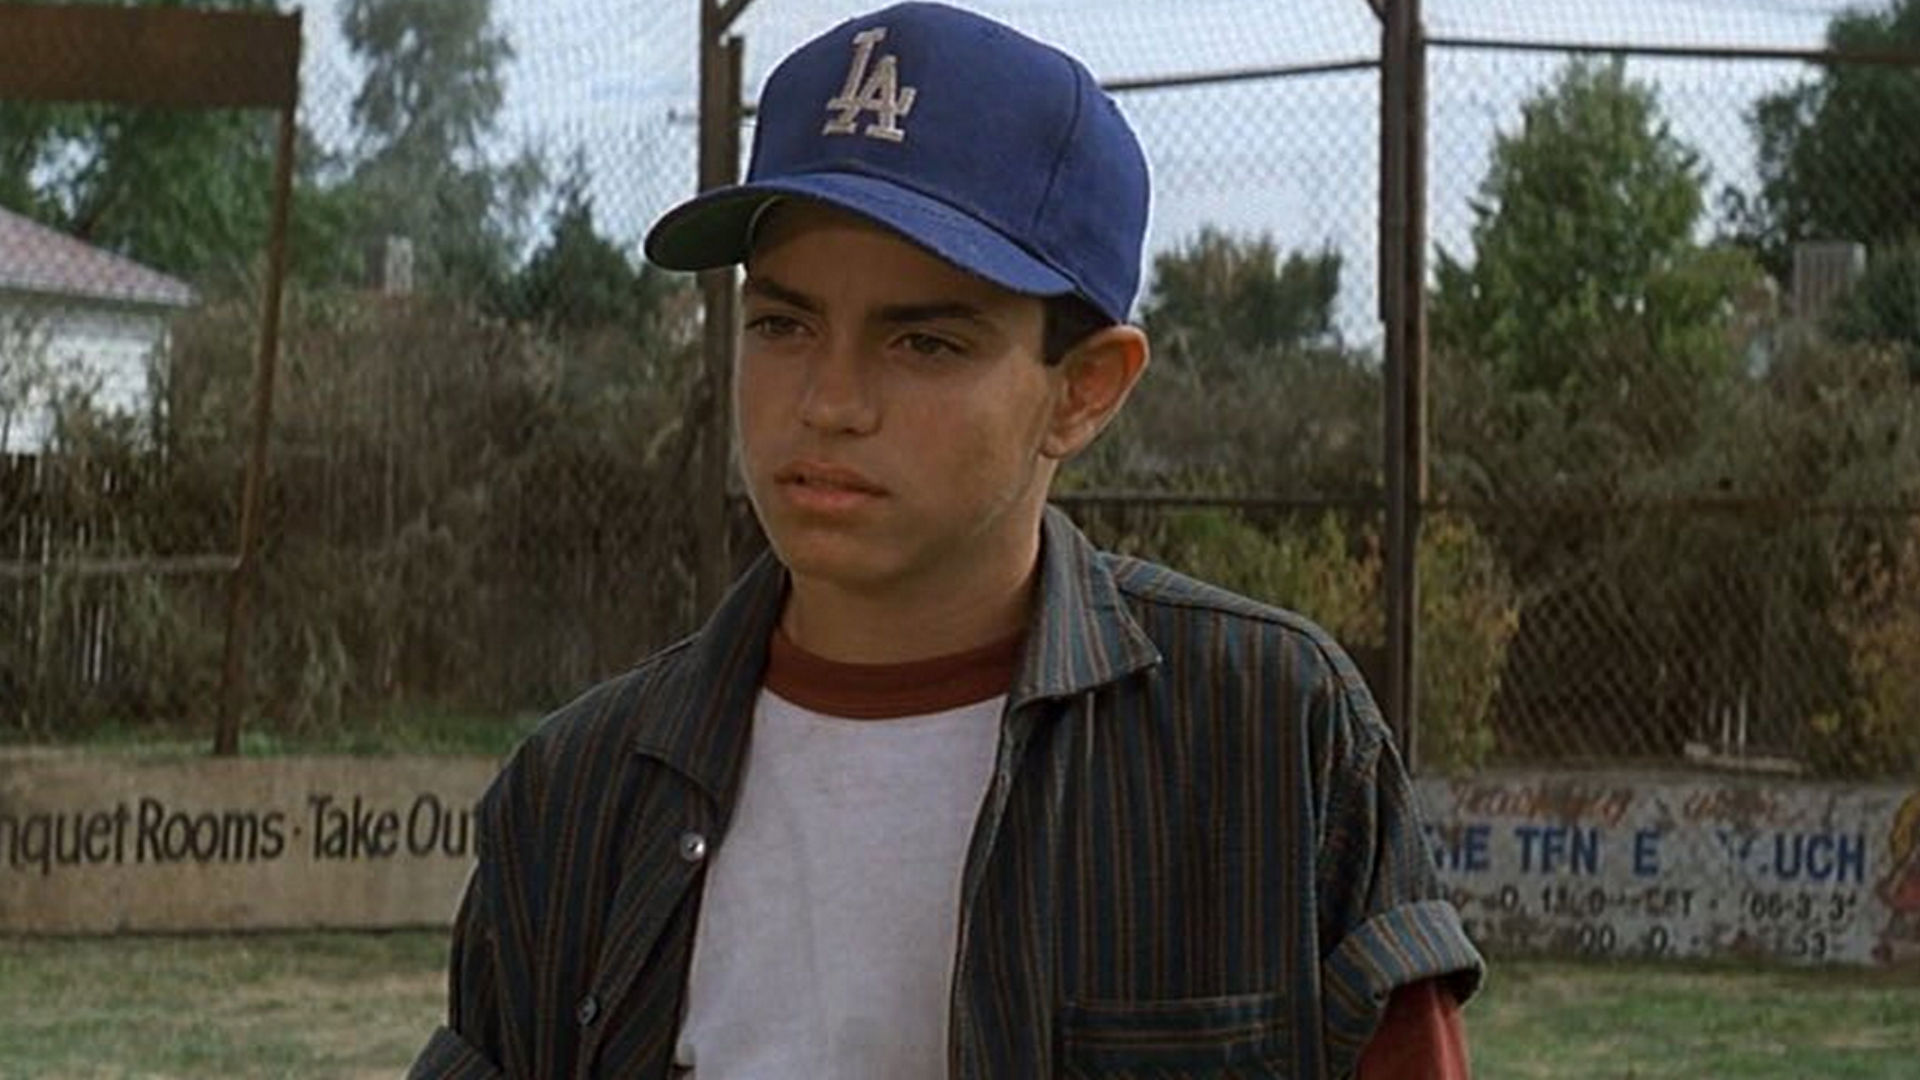 Actor Who Played Benny The Jet Rodriguez From The Sandlot Charged With Assault Sporting News